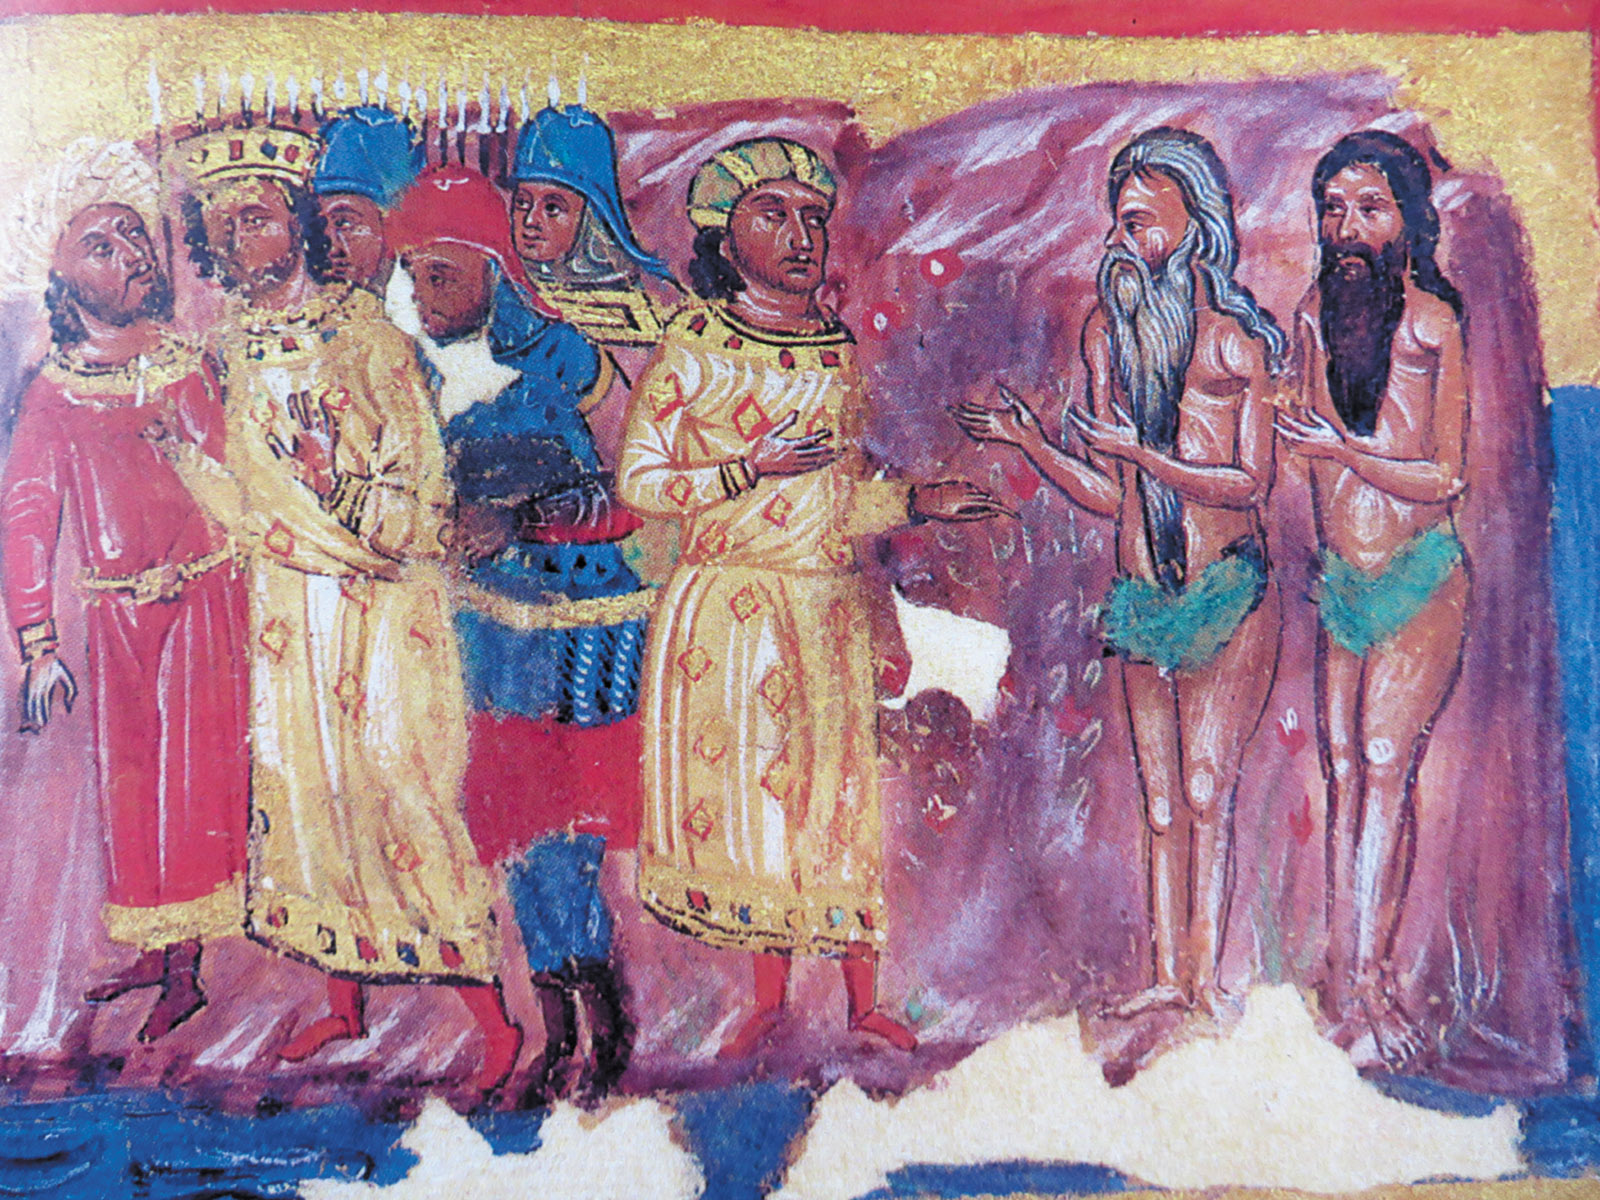 Alexander the Great meeting Gymnosophists (naked philosophers) in India